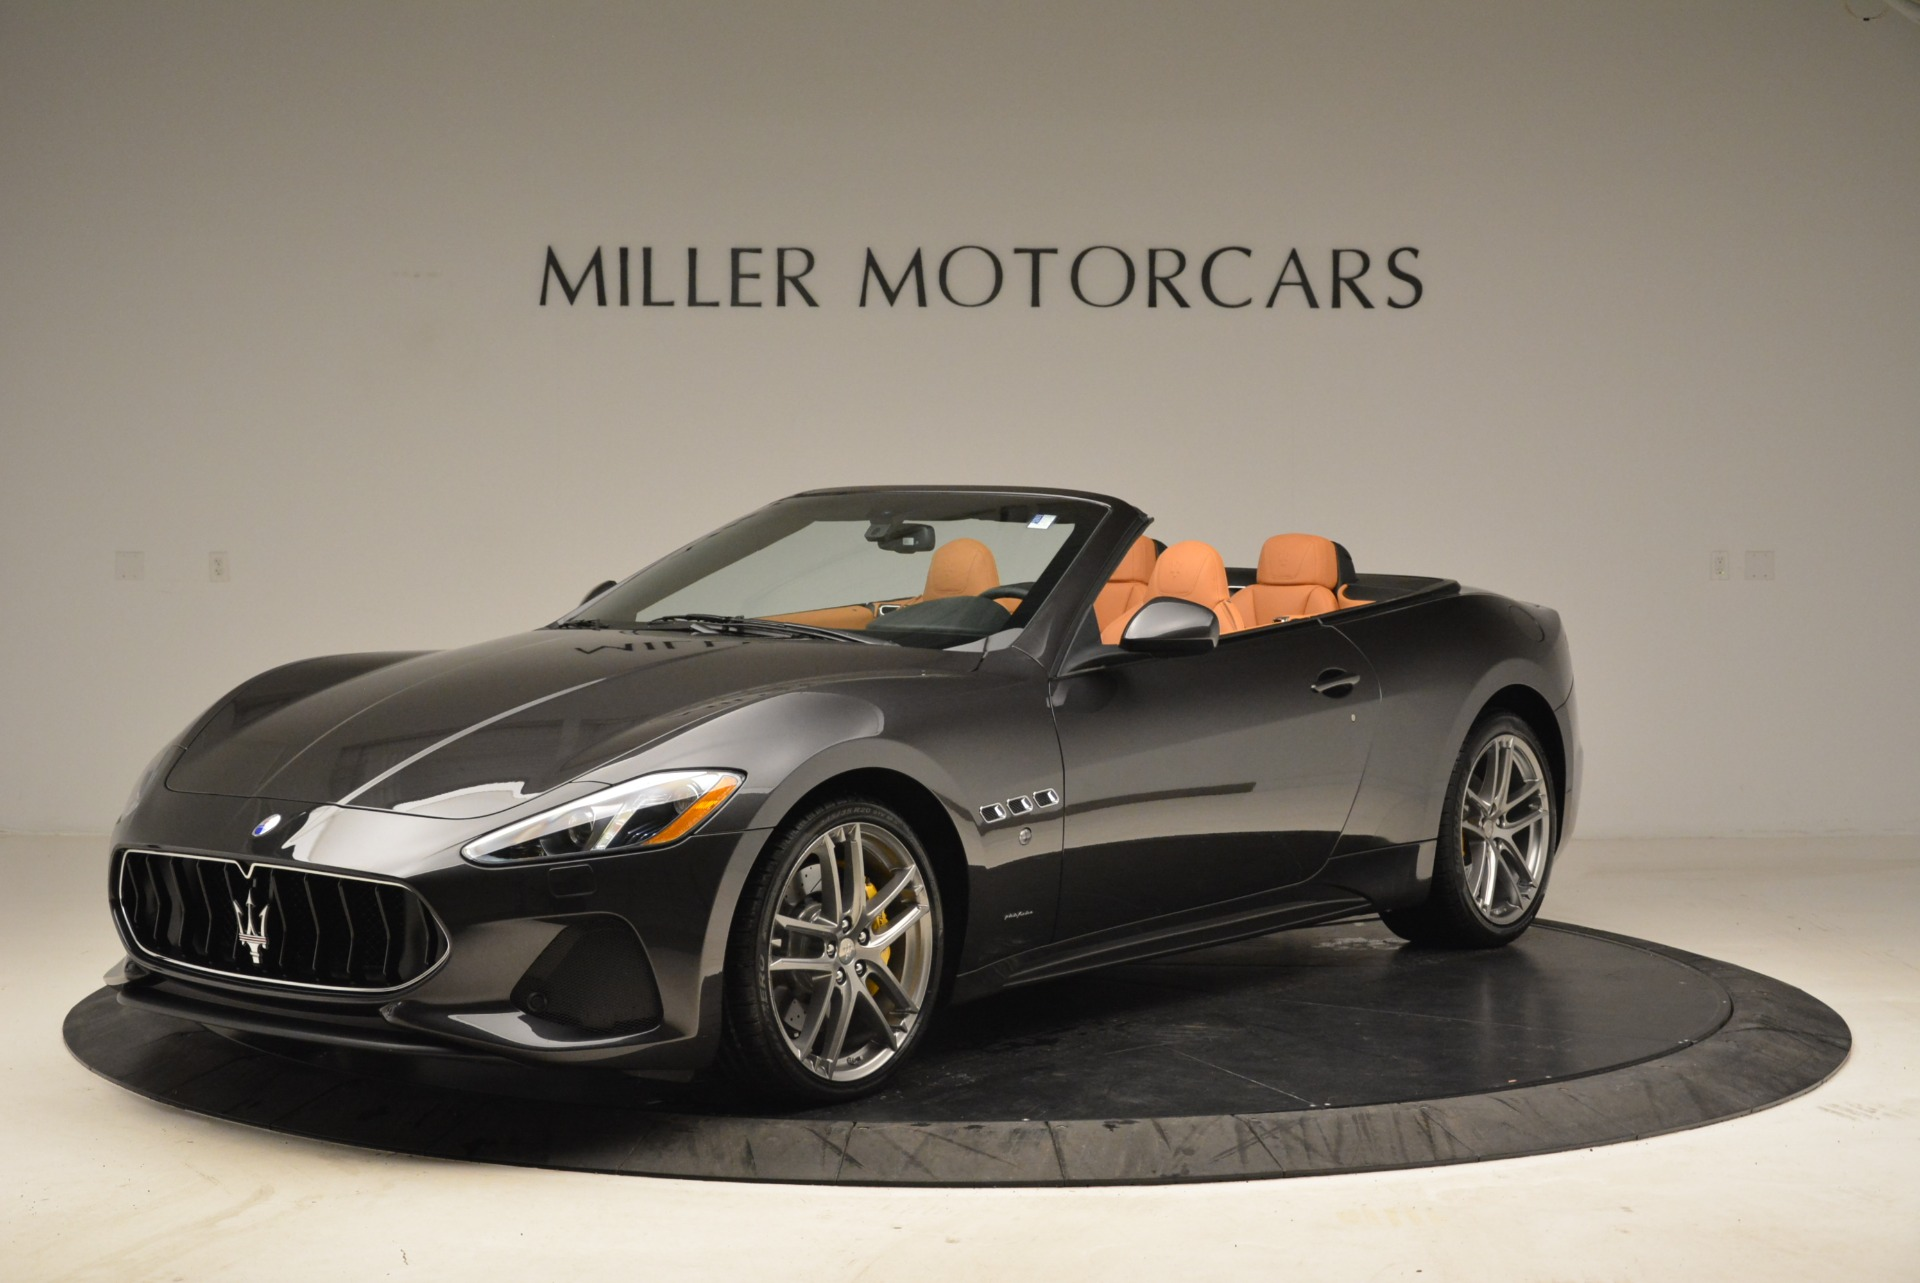 Used 2018 Maserati GranTurismo Sport Convertible for sale Sold at Alfa Romeo of Westport in Westport CT 06880 1